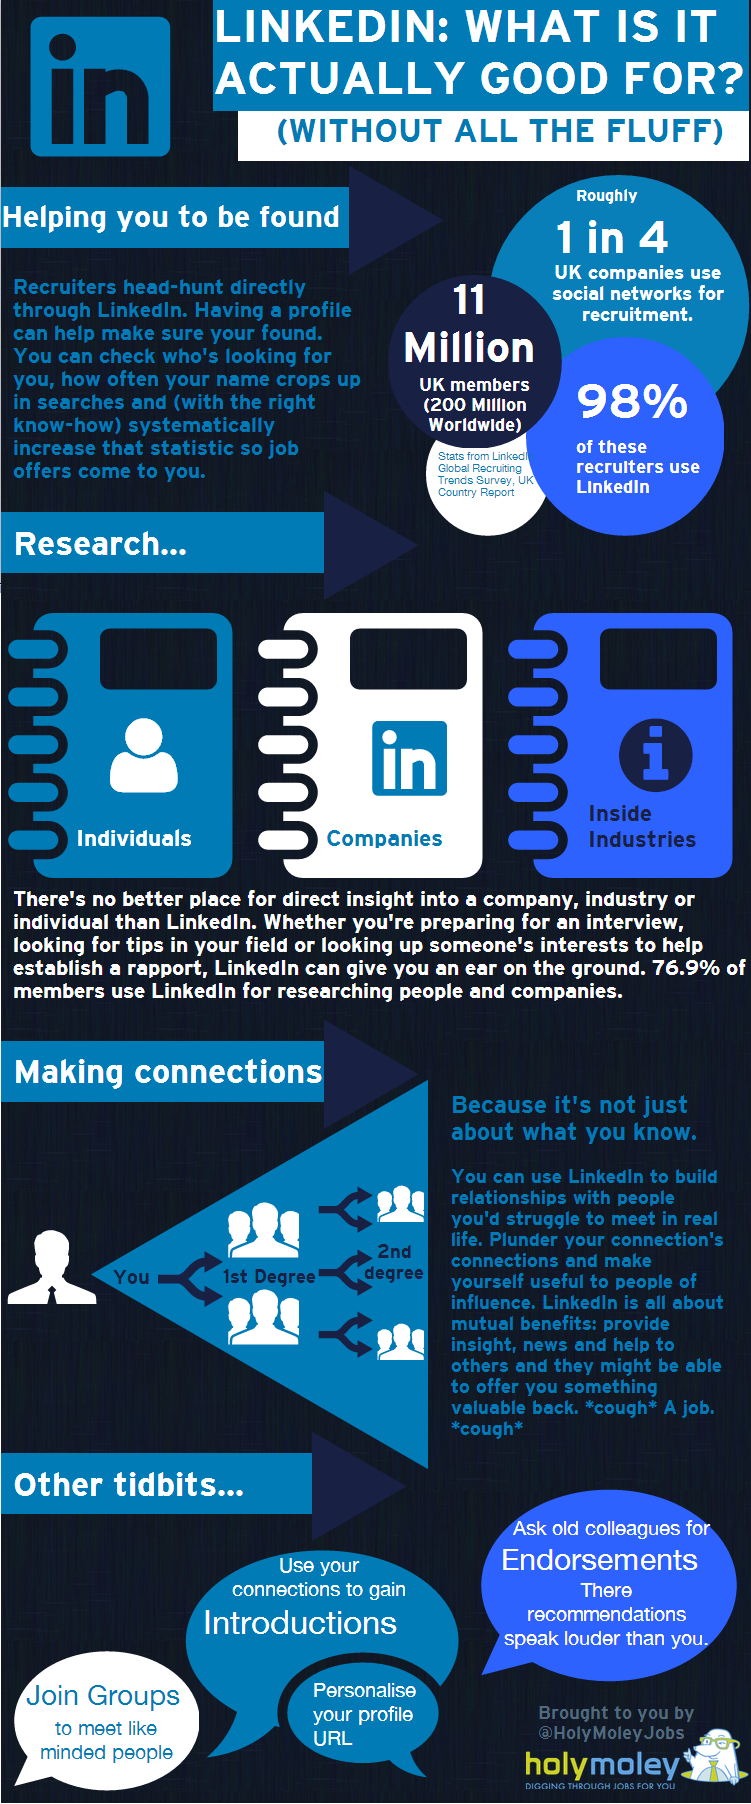 LinkedIn: What Is It Actually Good For